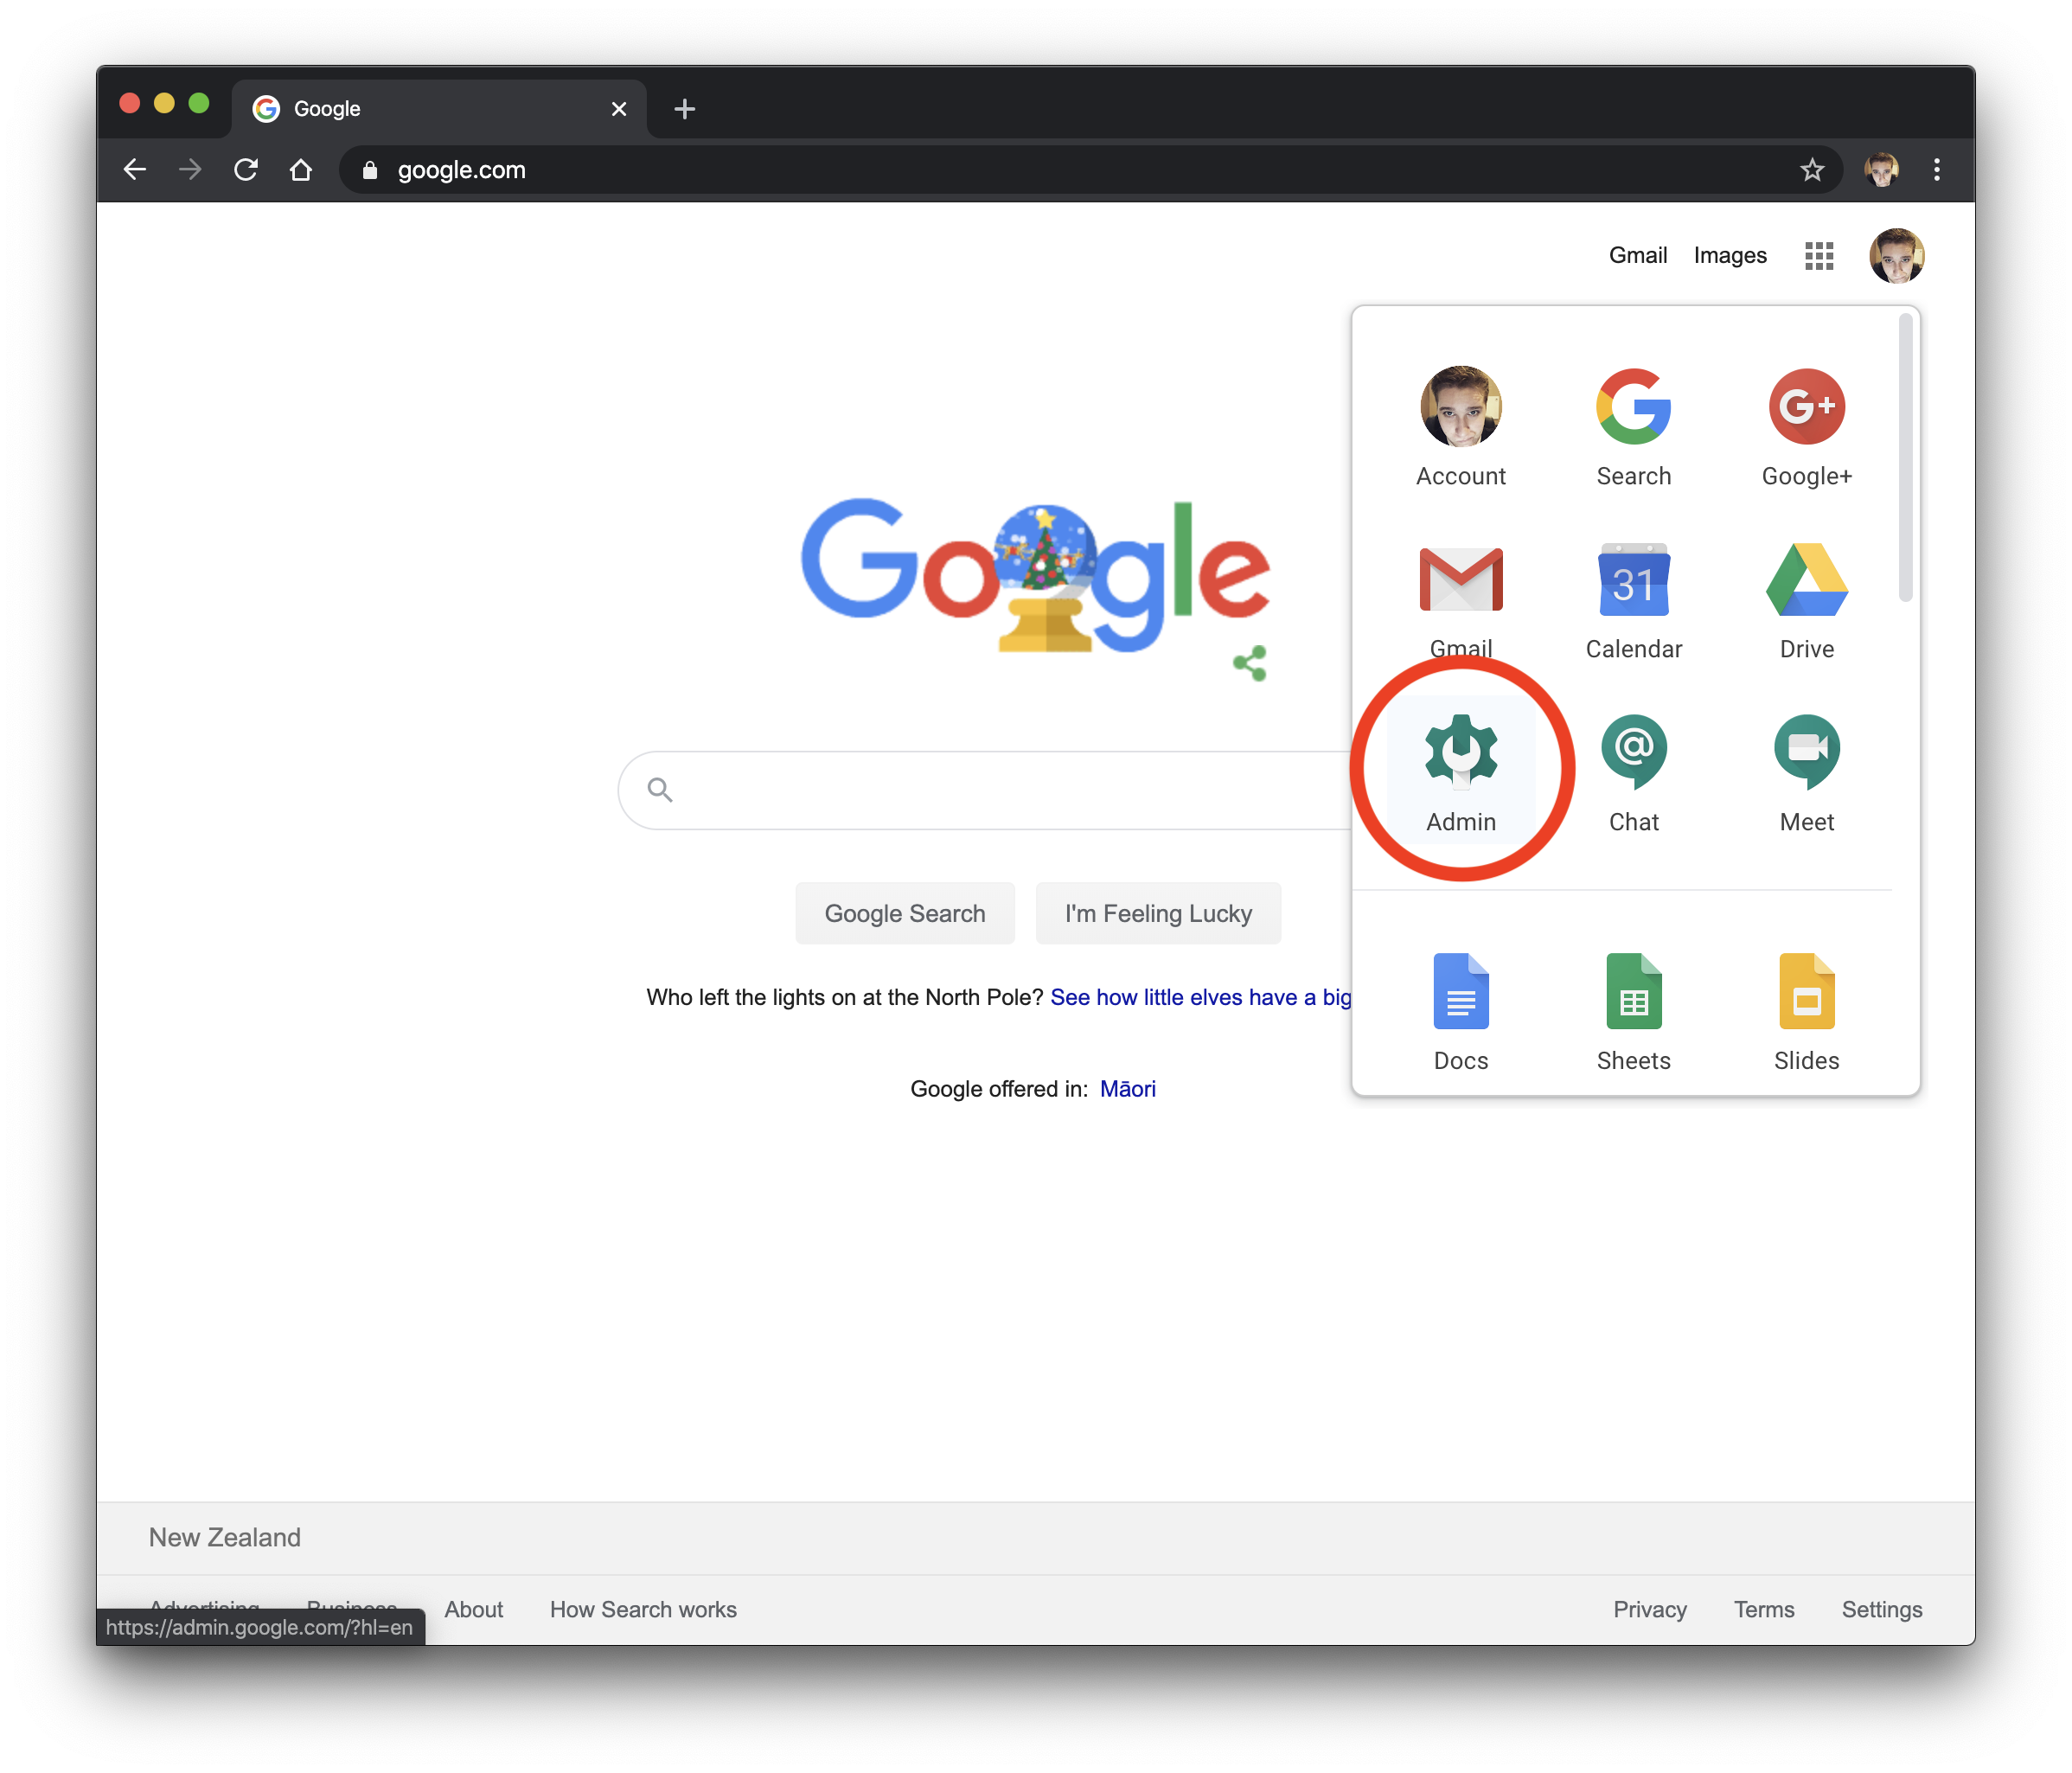 Log in to G Suite as the admin user